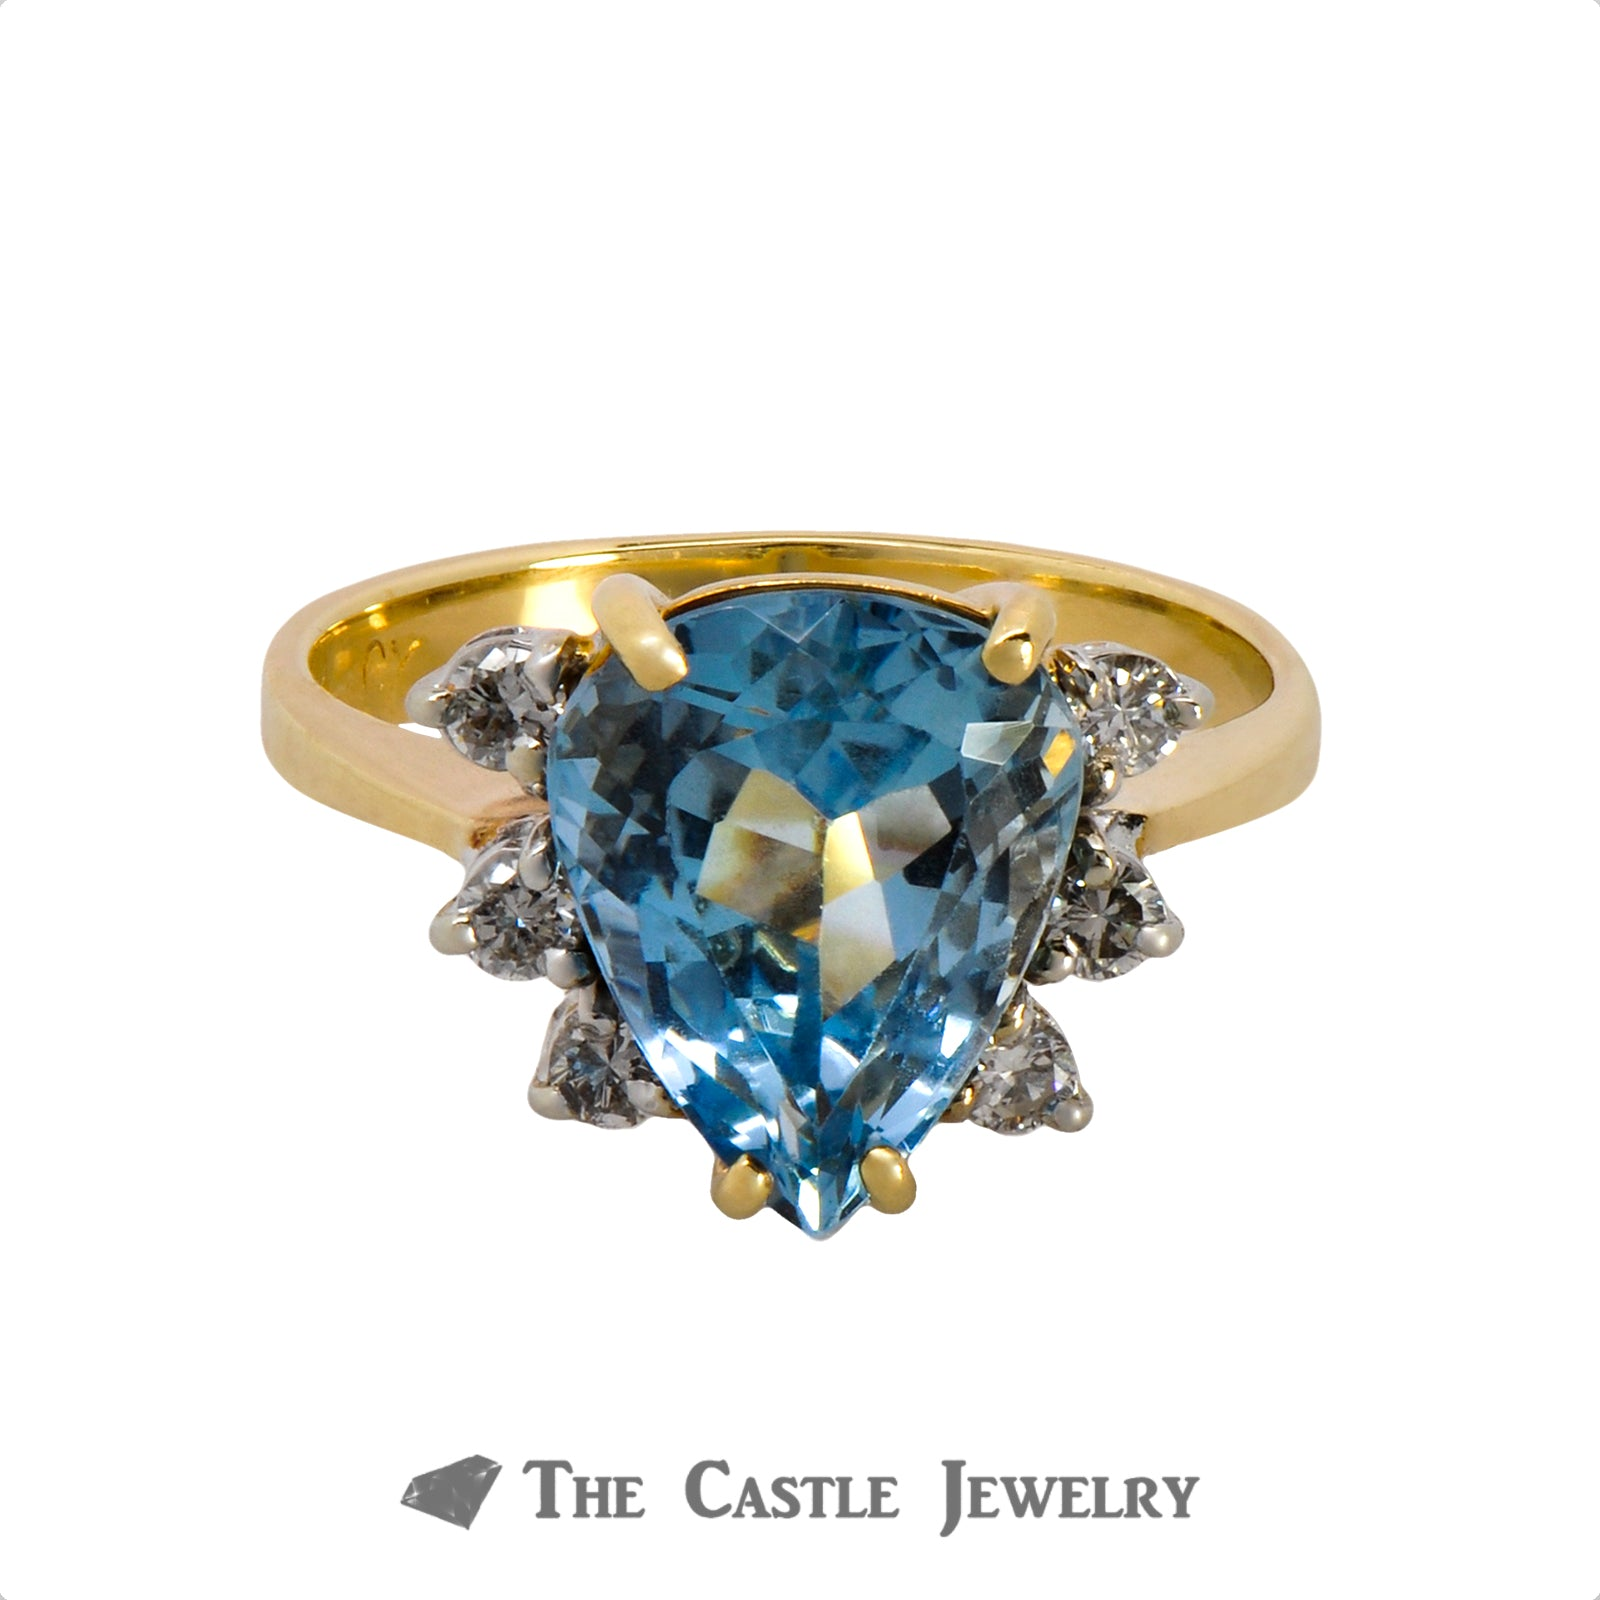 Vibrant Pear Cut Aquamarine Ring with Round Diamond Accents in 18k Yellow Gold